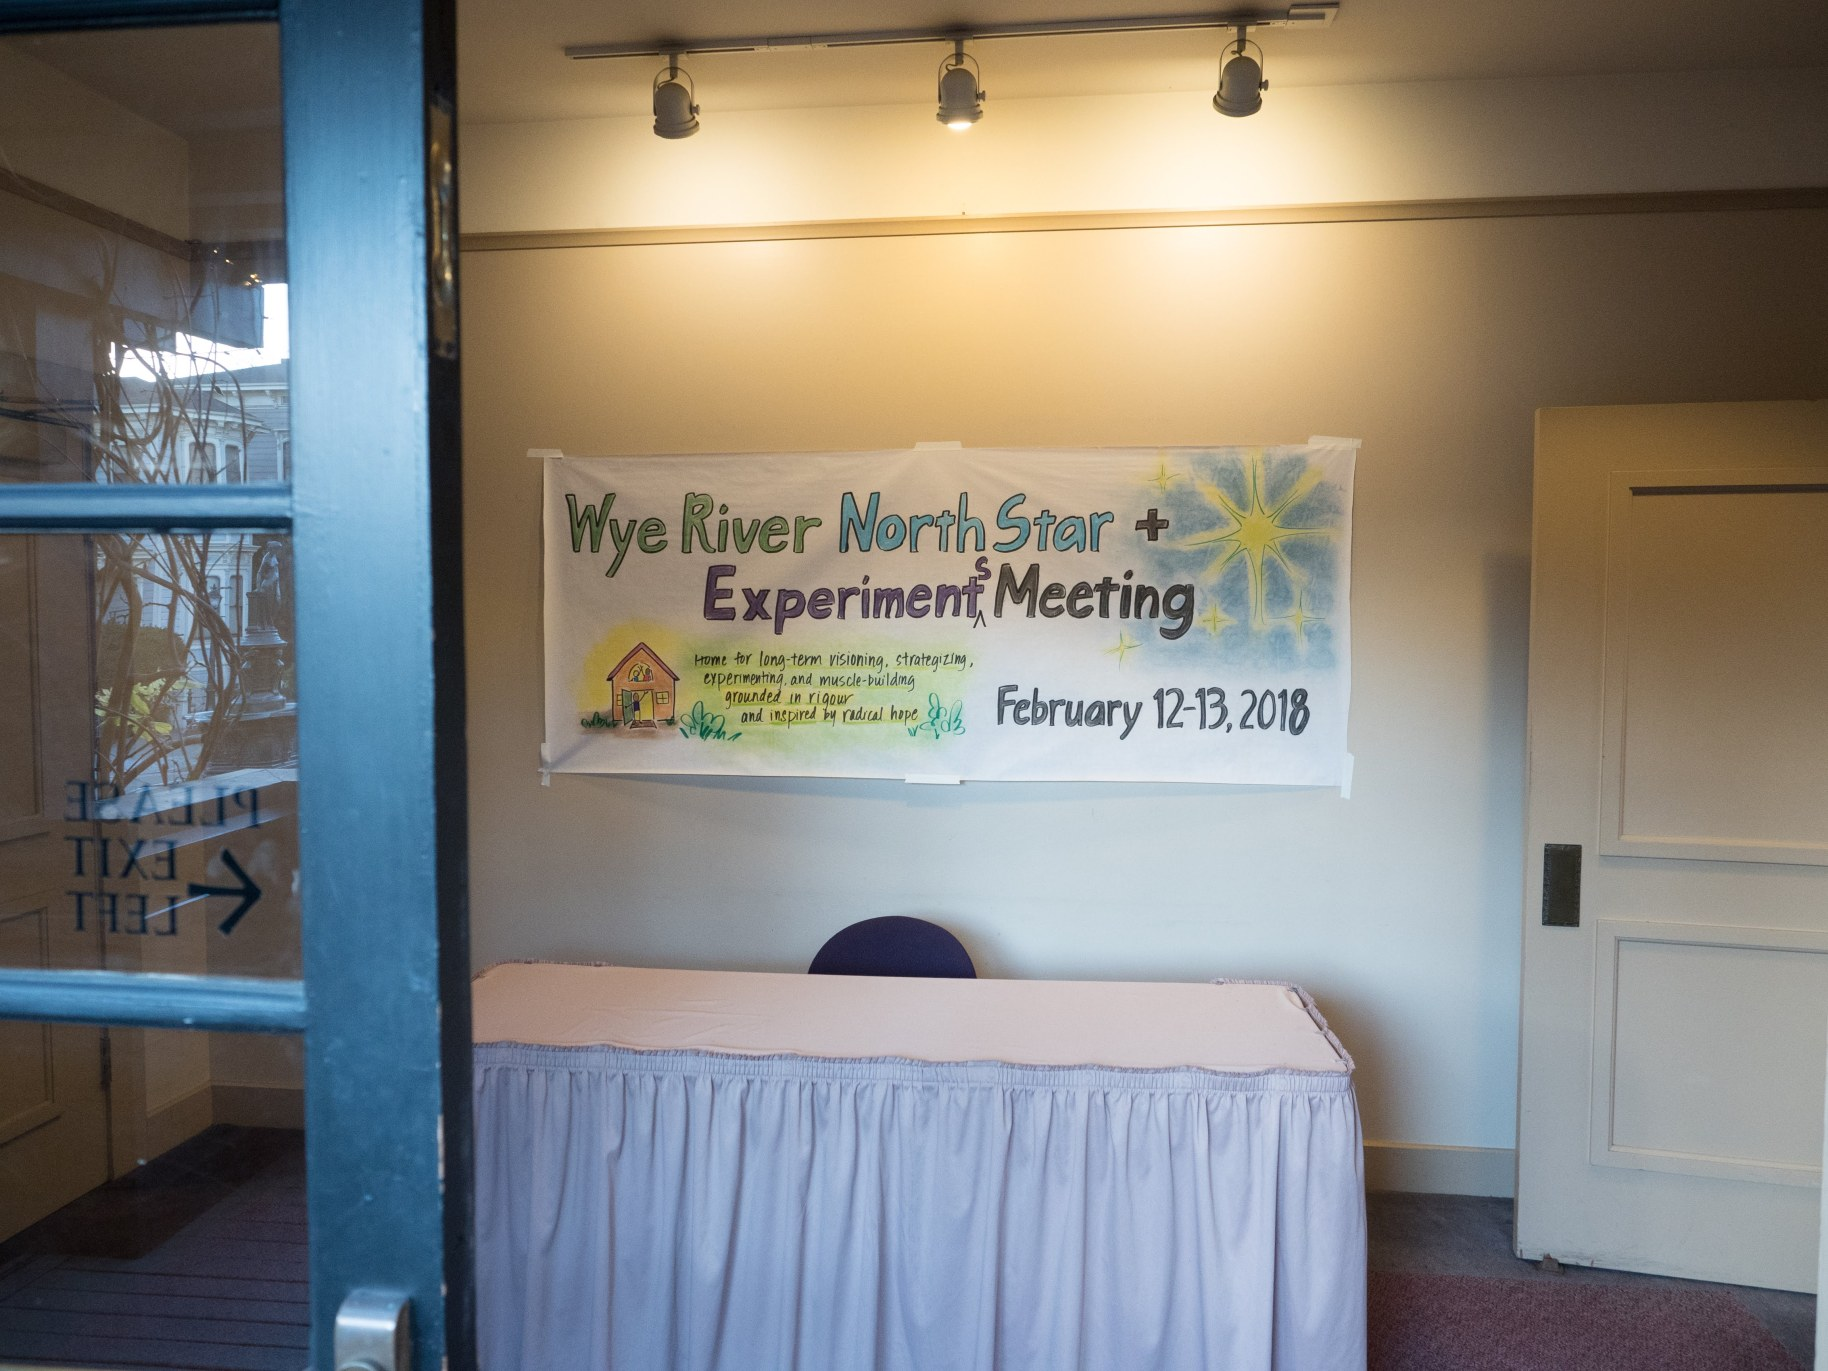 Wye River North Star + Experiments Meeting, February 12-13, 2018, Nile Hall, Preservation Park, Oakland, California.